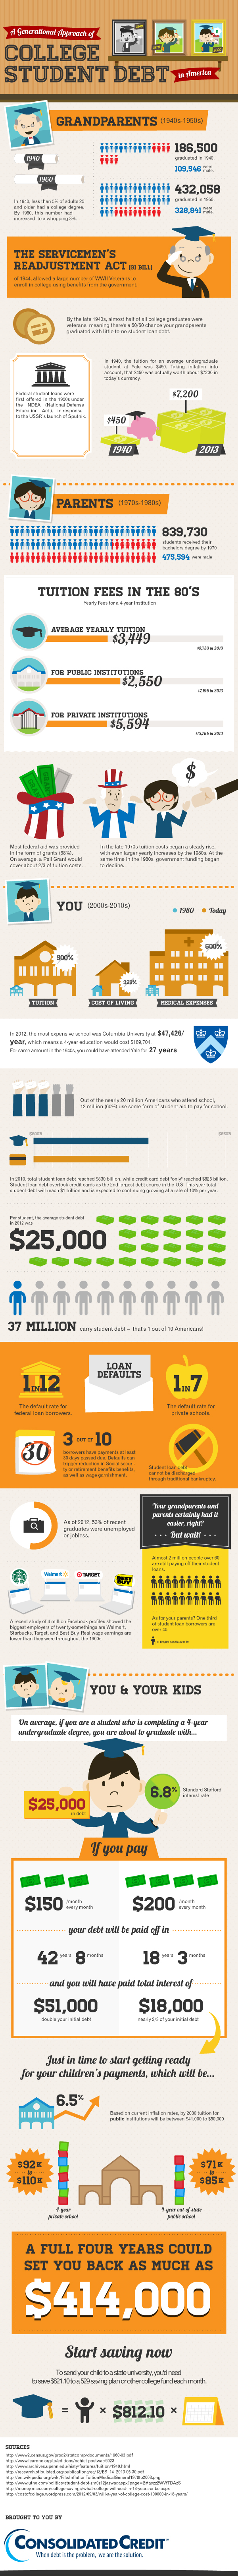 Student Credit / Student Loan Debt